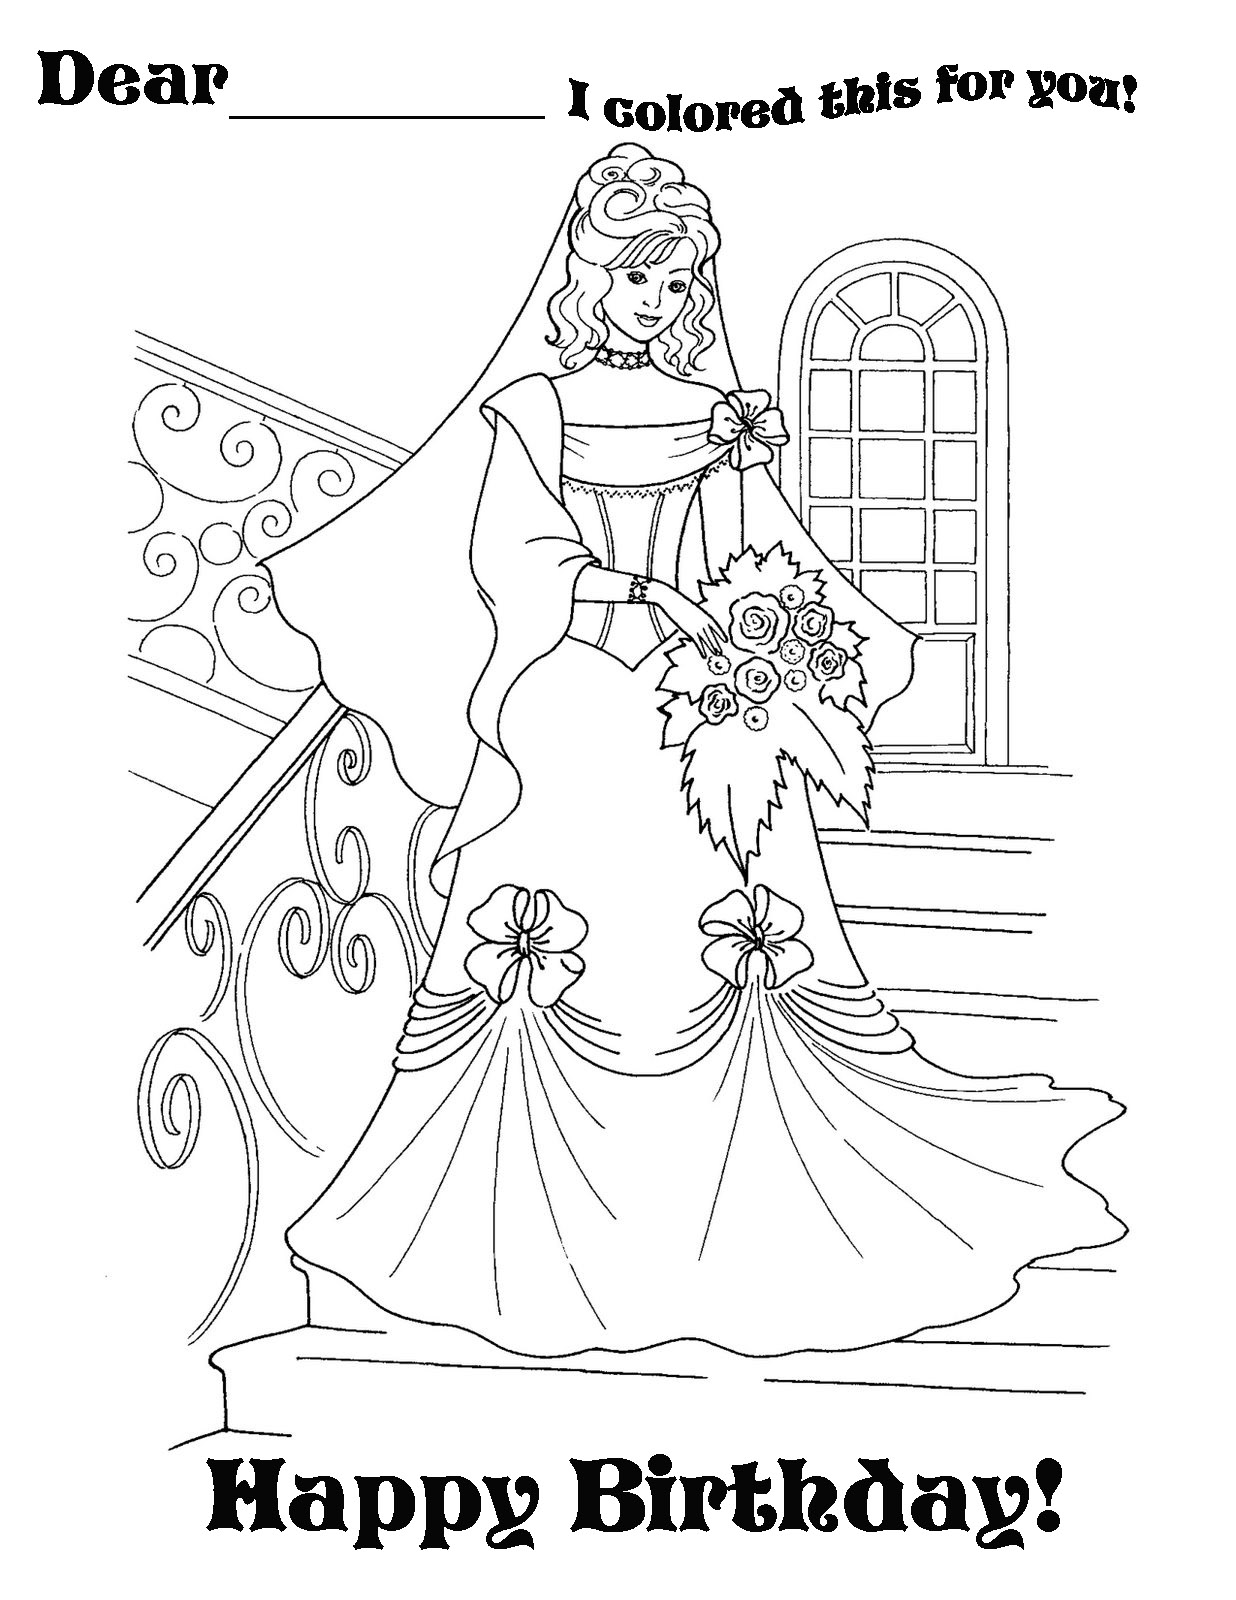 Princess coloring pages happy birthday princess coloring picture bookmarktalkfo Image collections